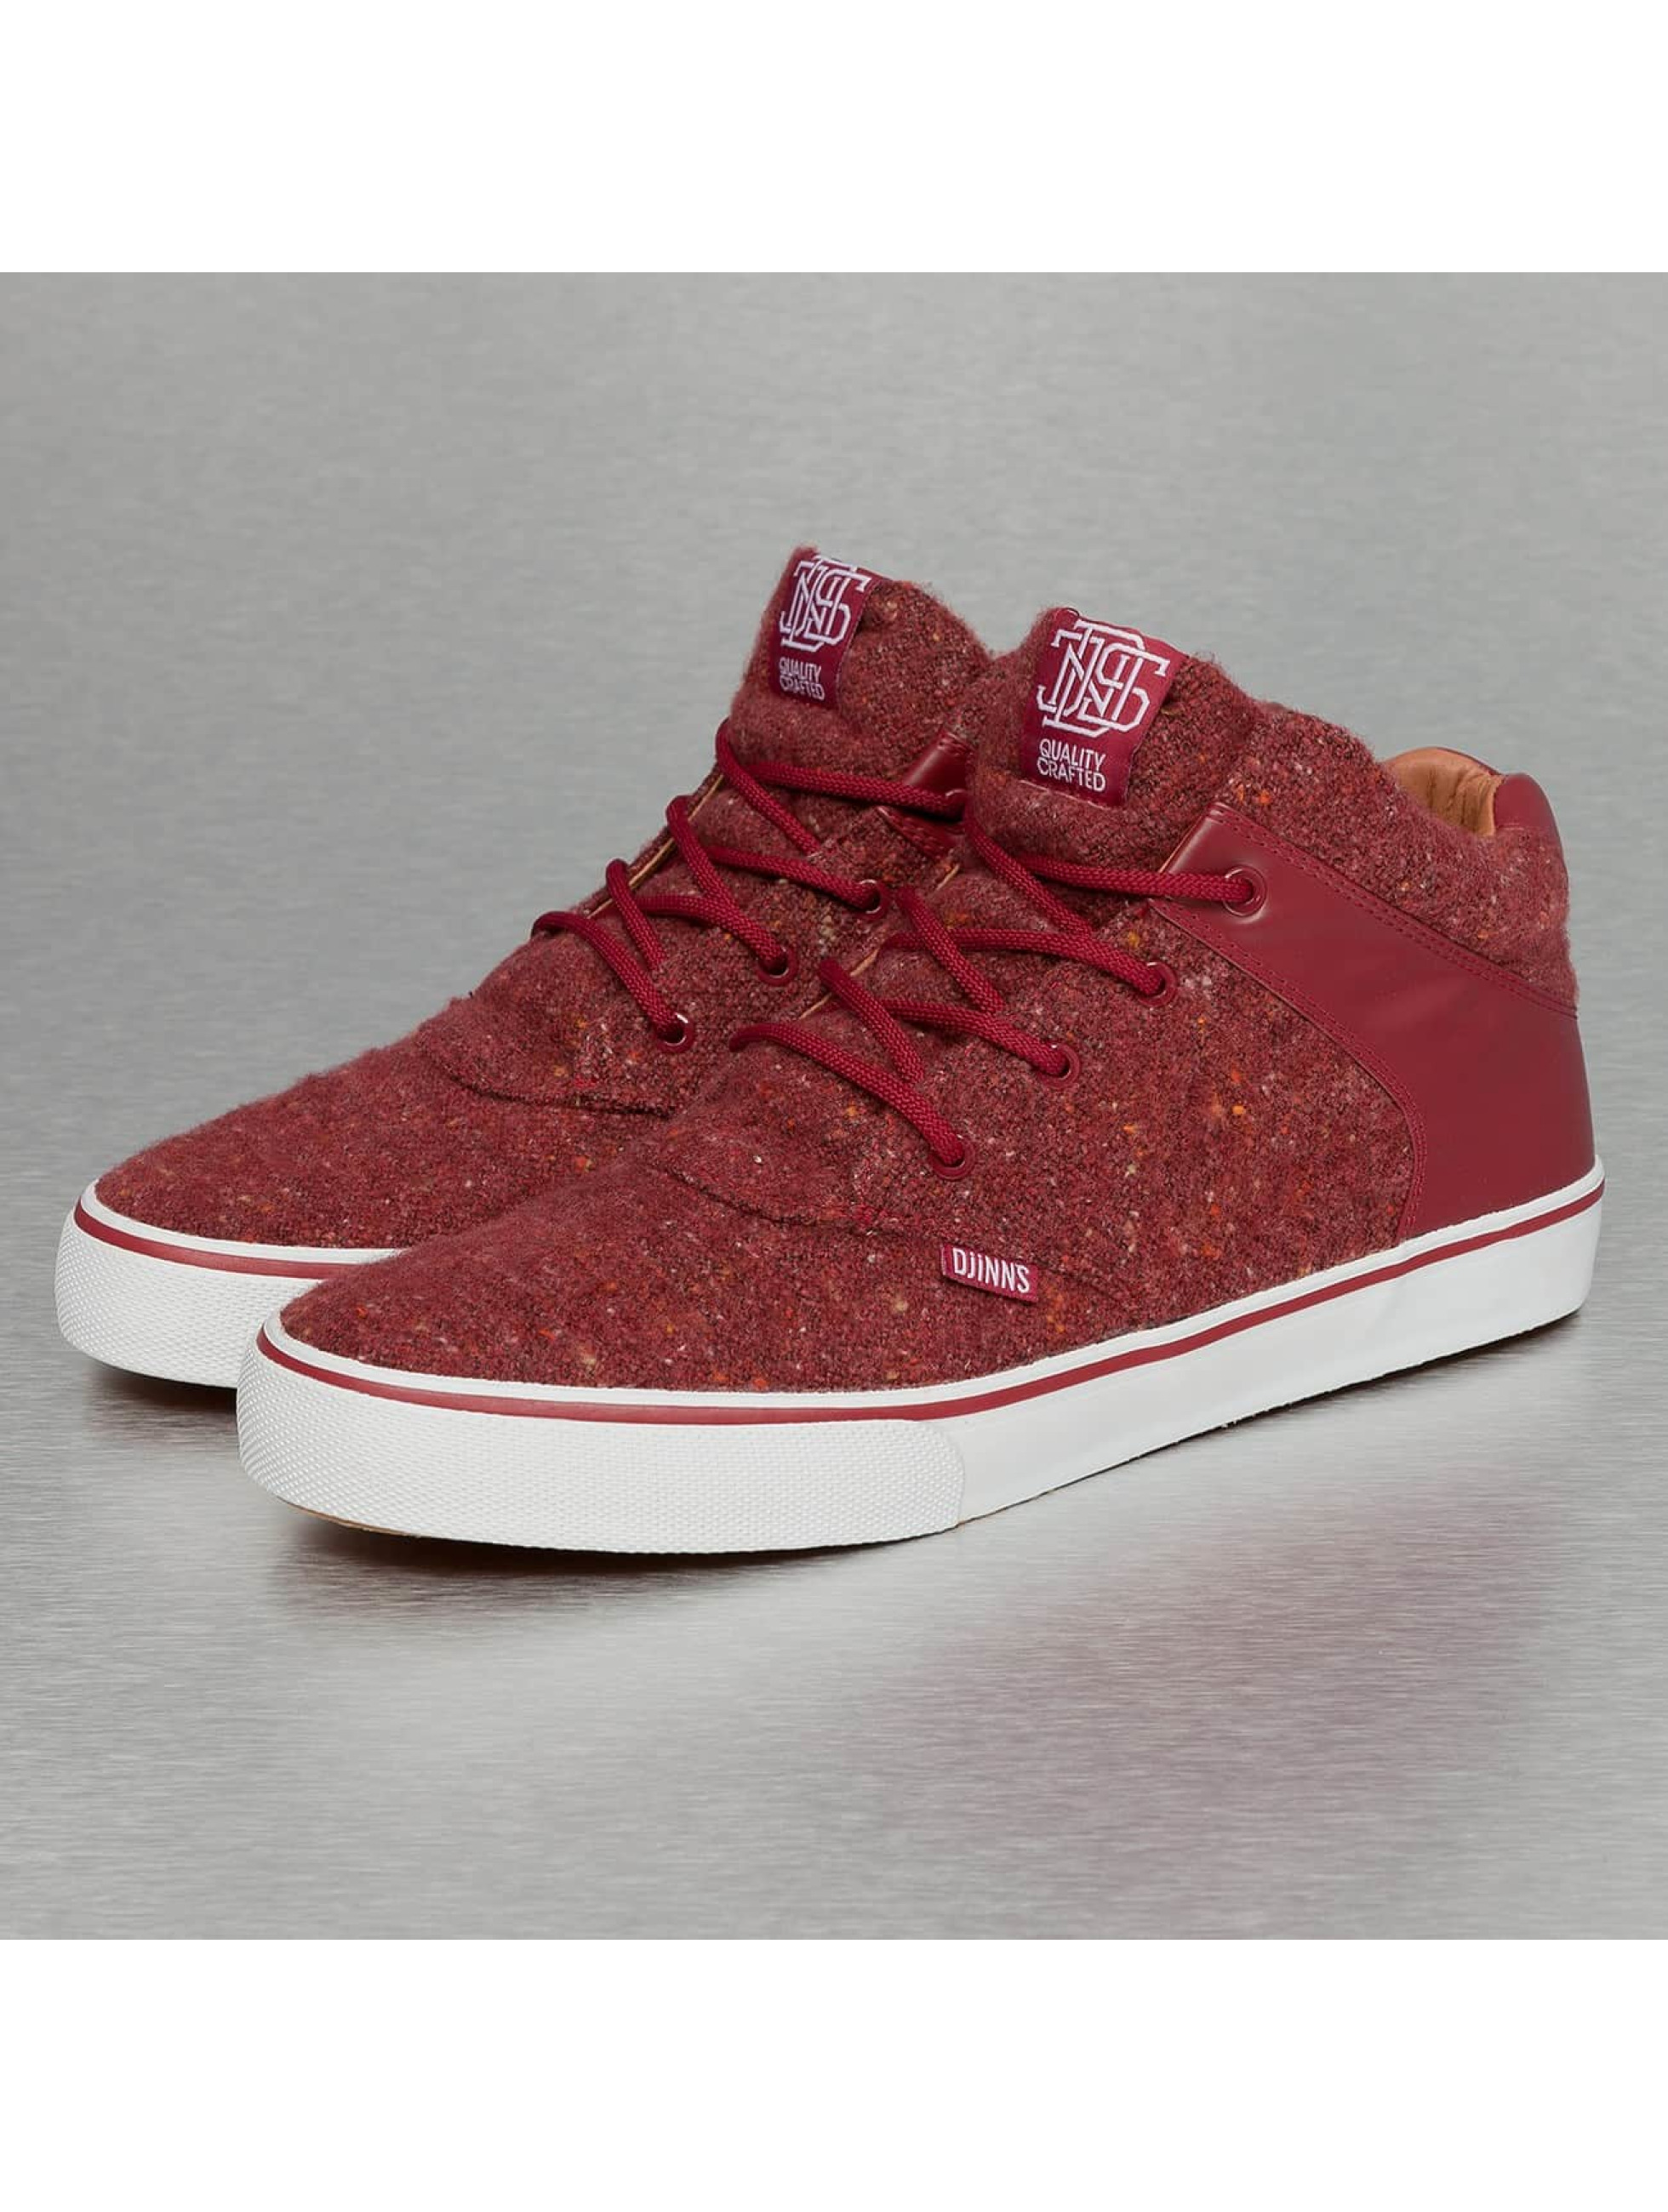 Djinns Sneakers Chunk Spotted Felt red